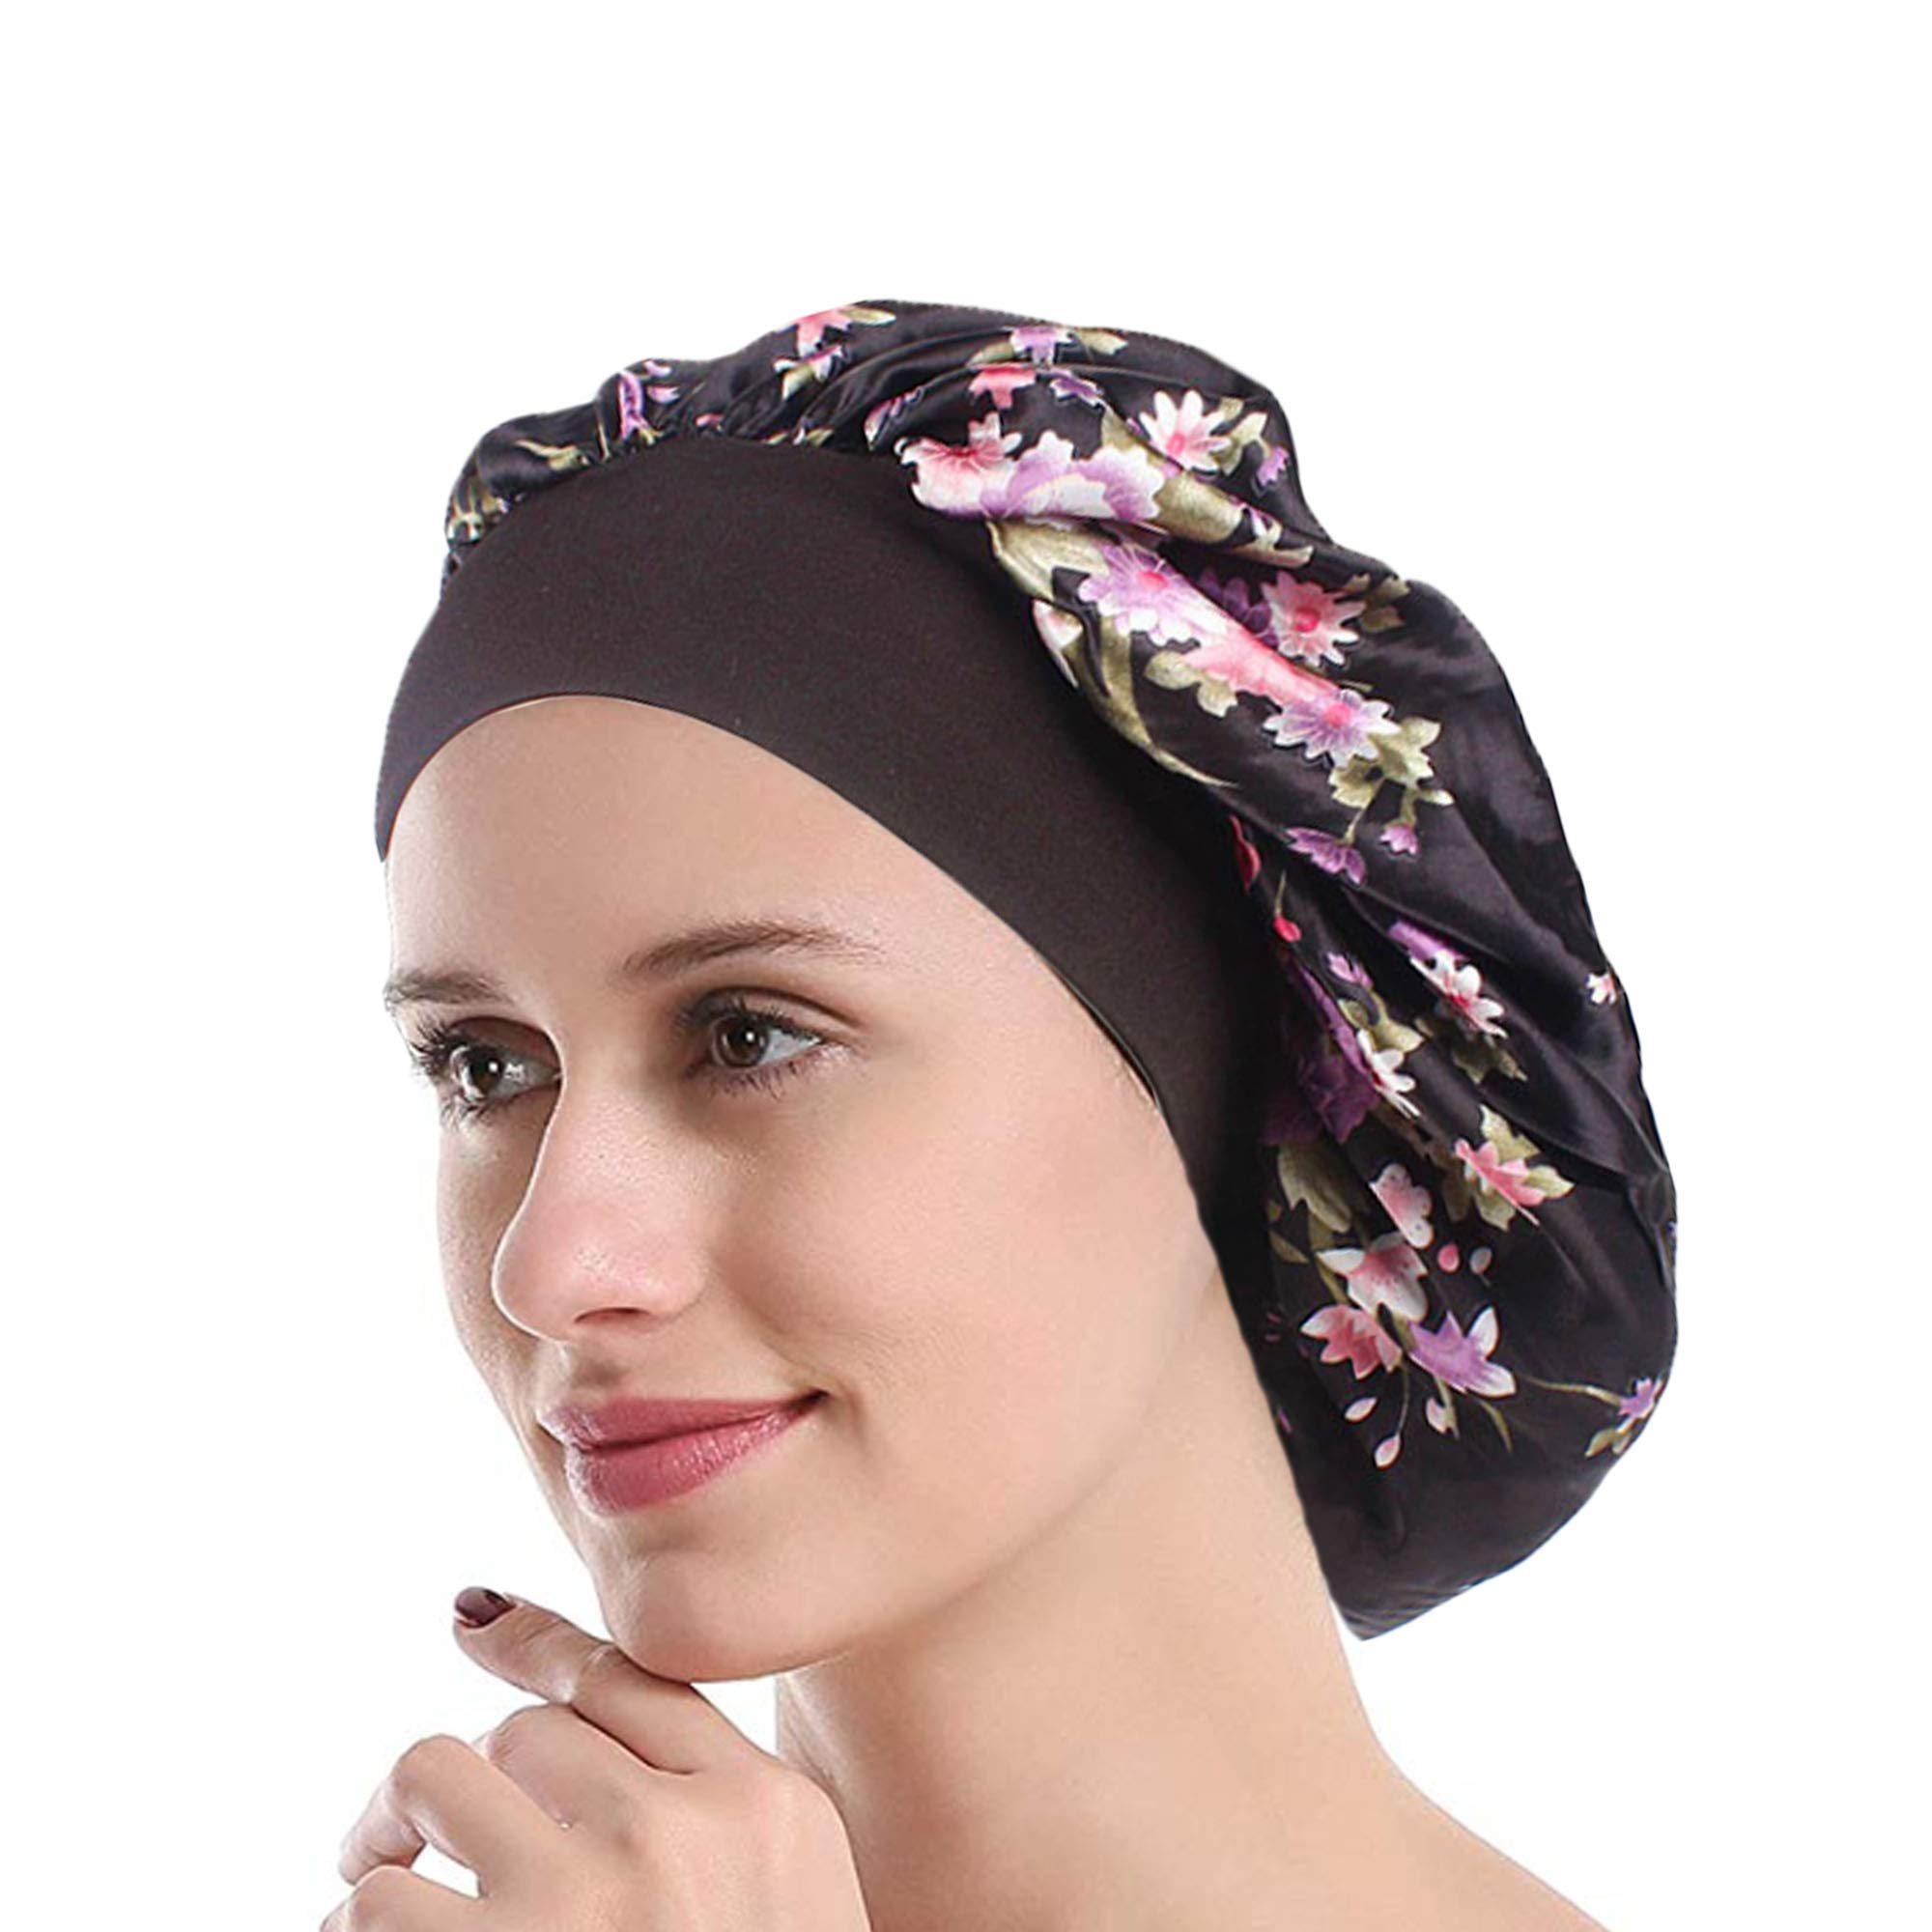 Funcl Womens Sleep Night Cap Wide Band Satin Bonnet for Hair Beauty,Hair Care Cap,Chemo Beanie,Curly Springy Hair by Funcl